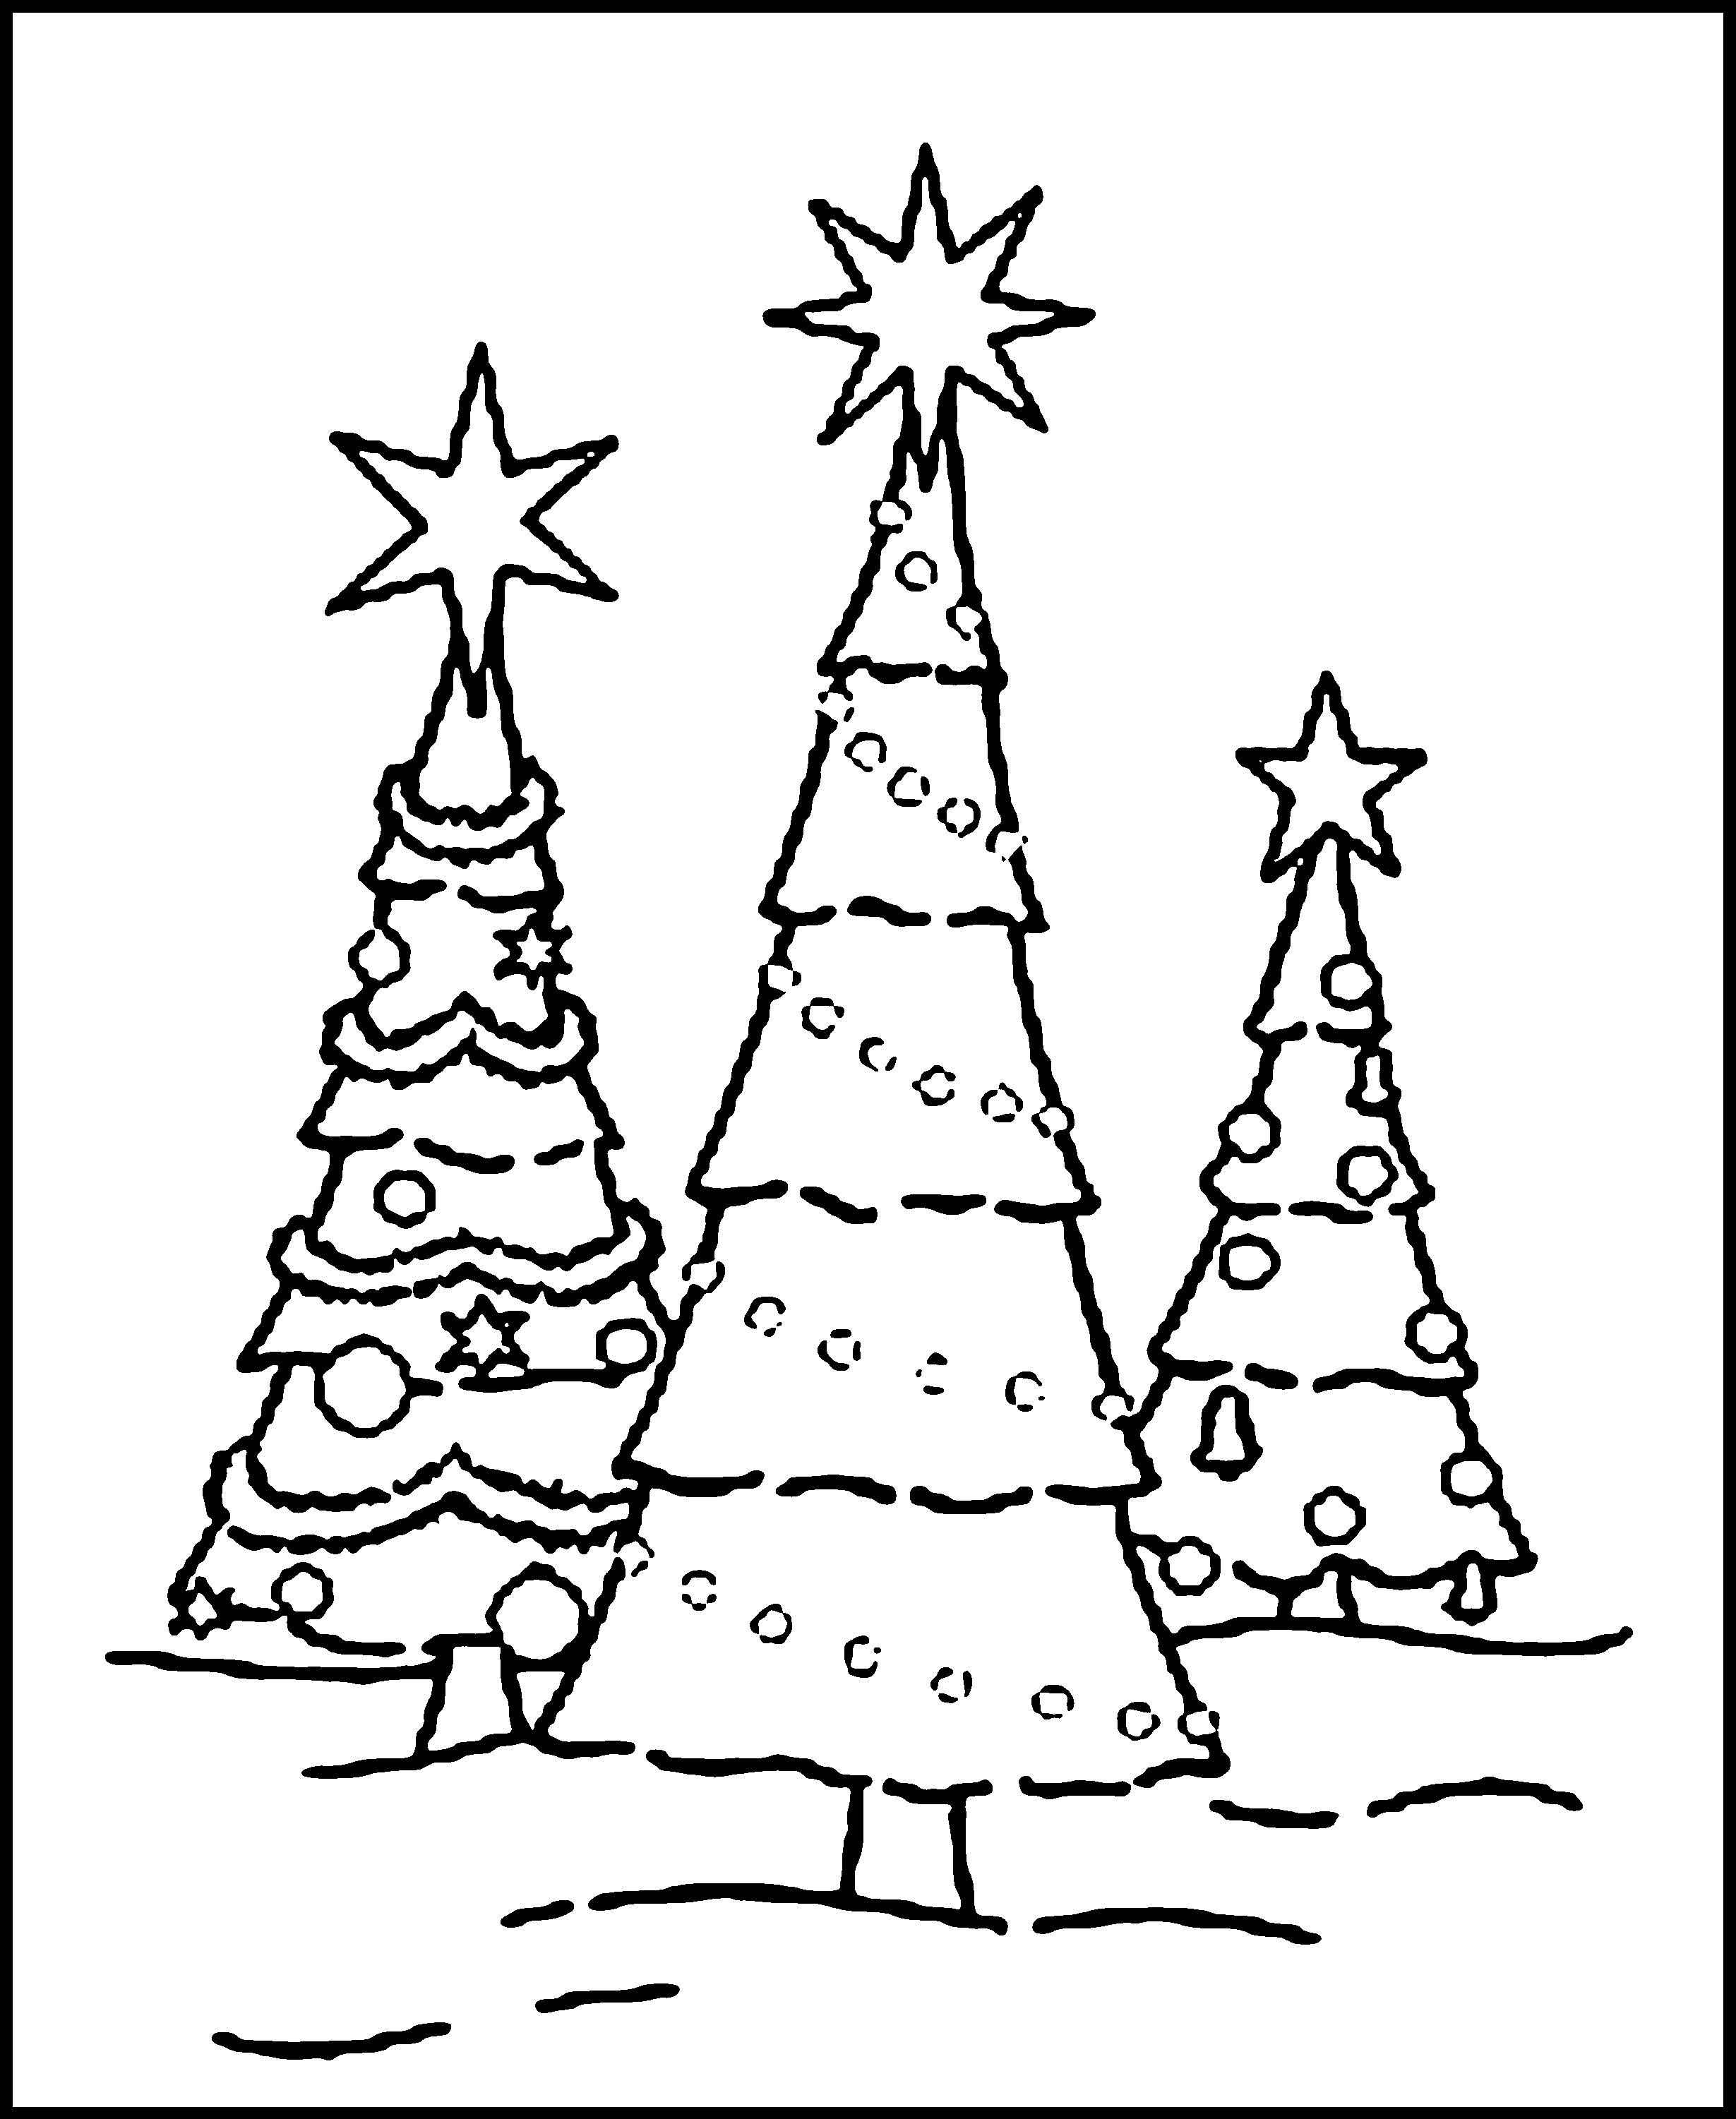 colouring pages christmas tree free printable christmas tree coloring pages for kids colouring tree christmas pages